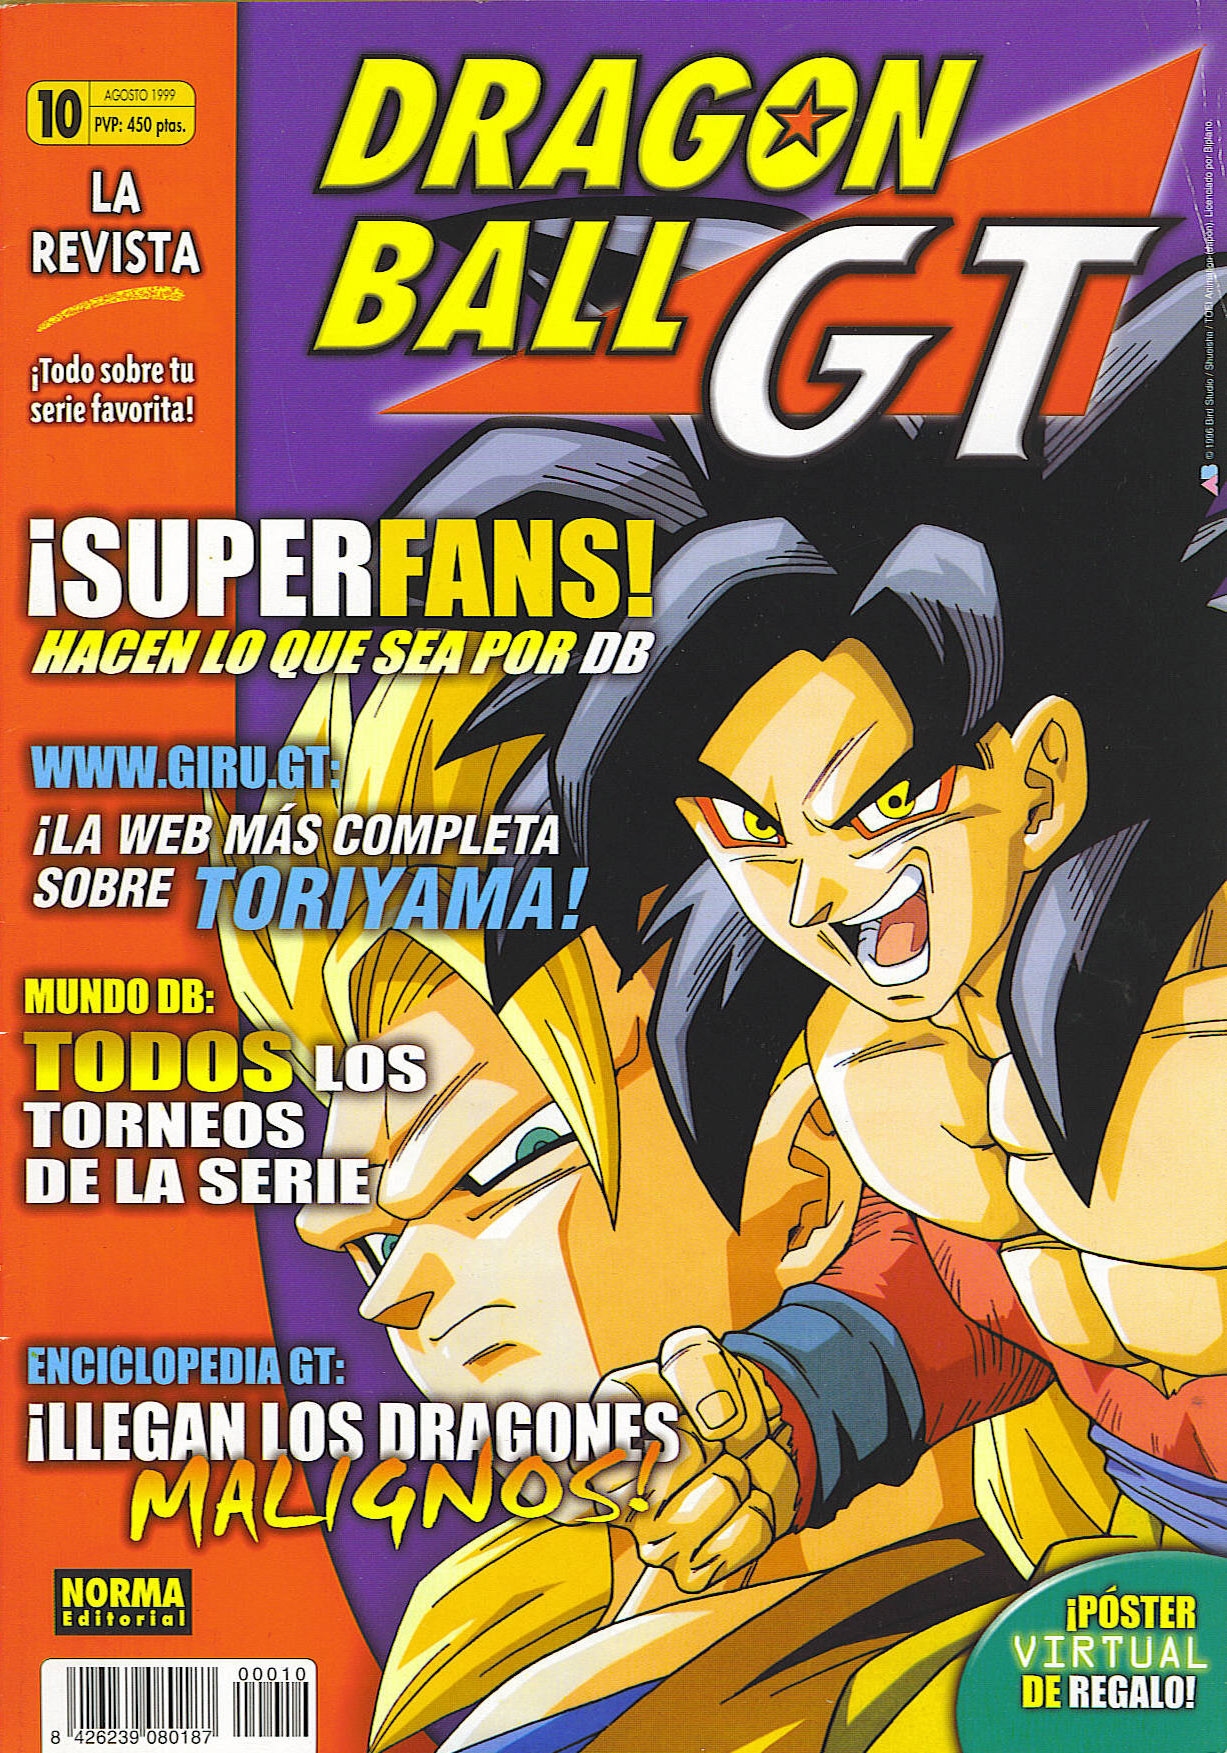 Revistas dragon ball capitulos imagenes anime y - Imagenes de dragon ball super descargar ...